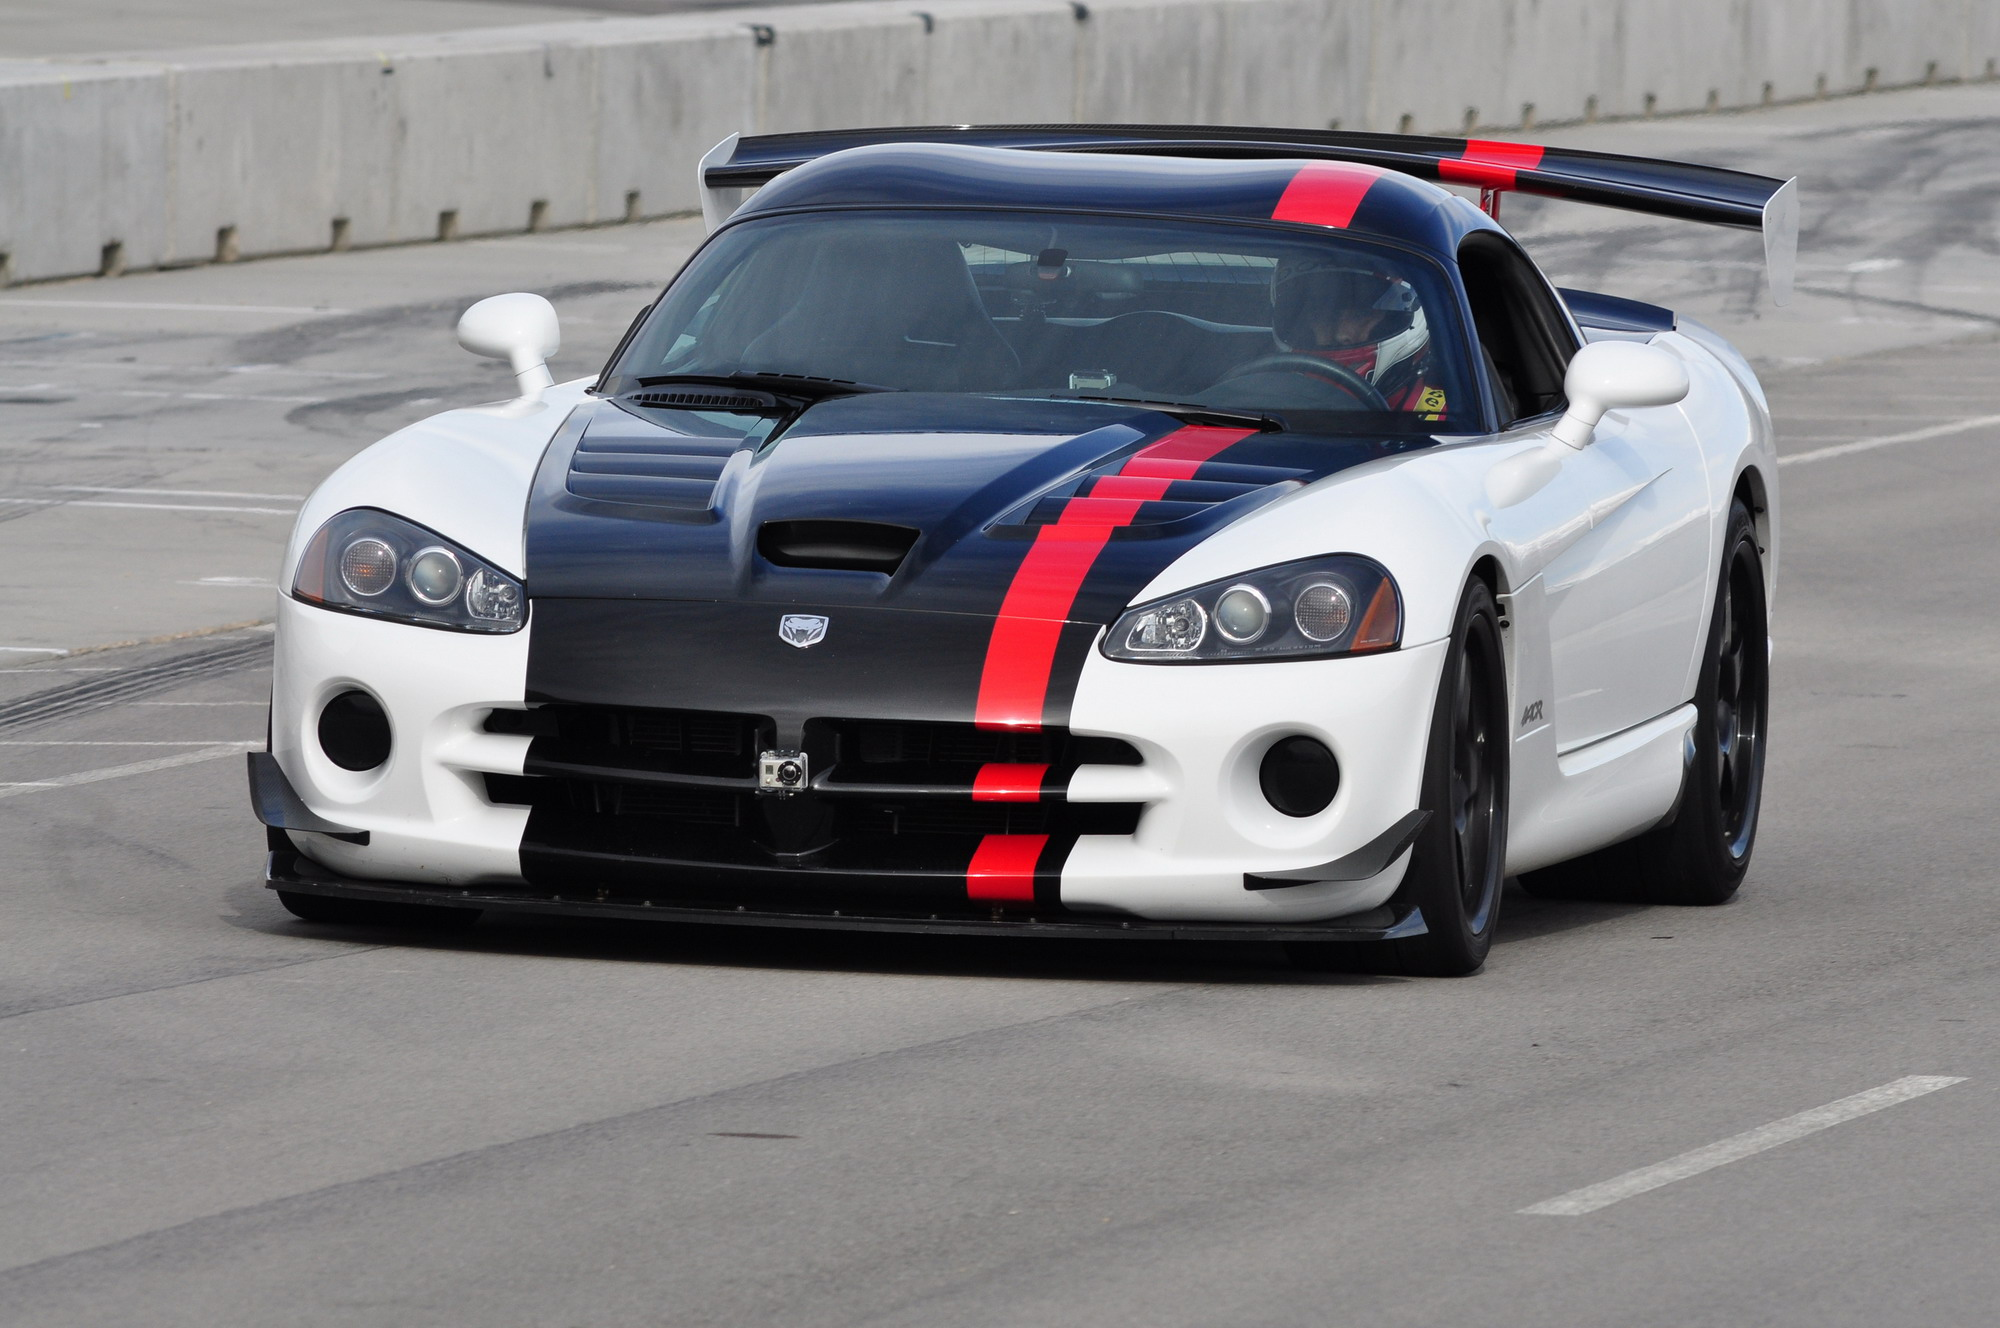 Dodge Viper For Sale >> 2008 - 2010 Dodge Viper SRT10 ACR Review - Top Speed